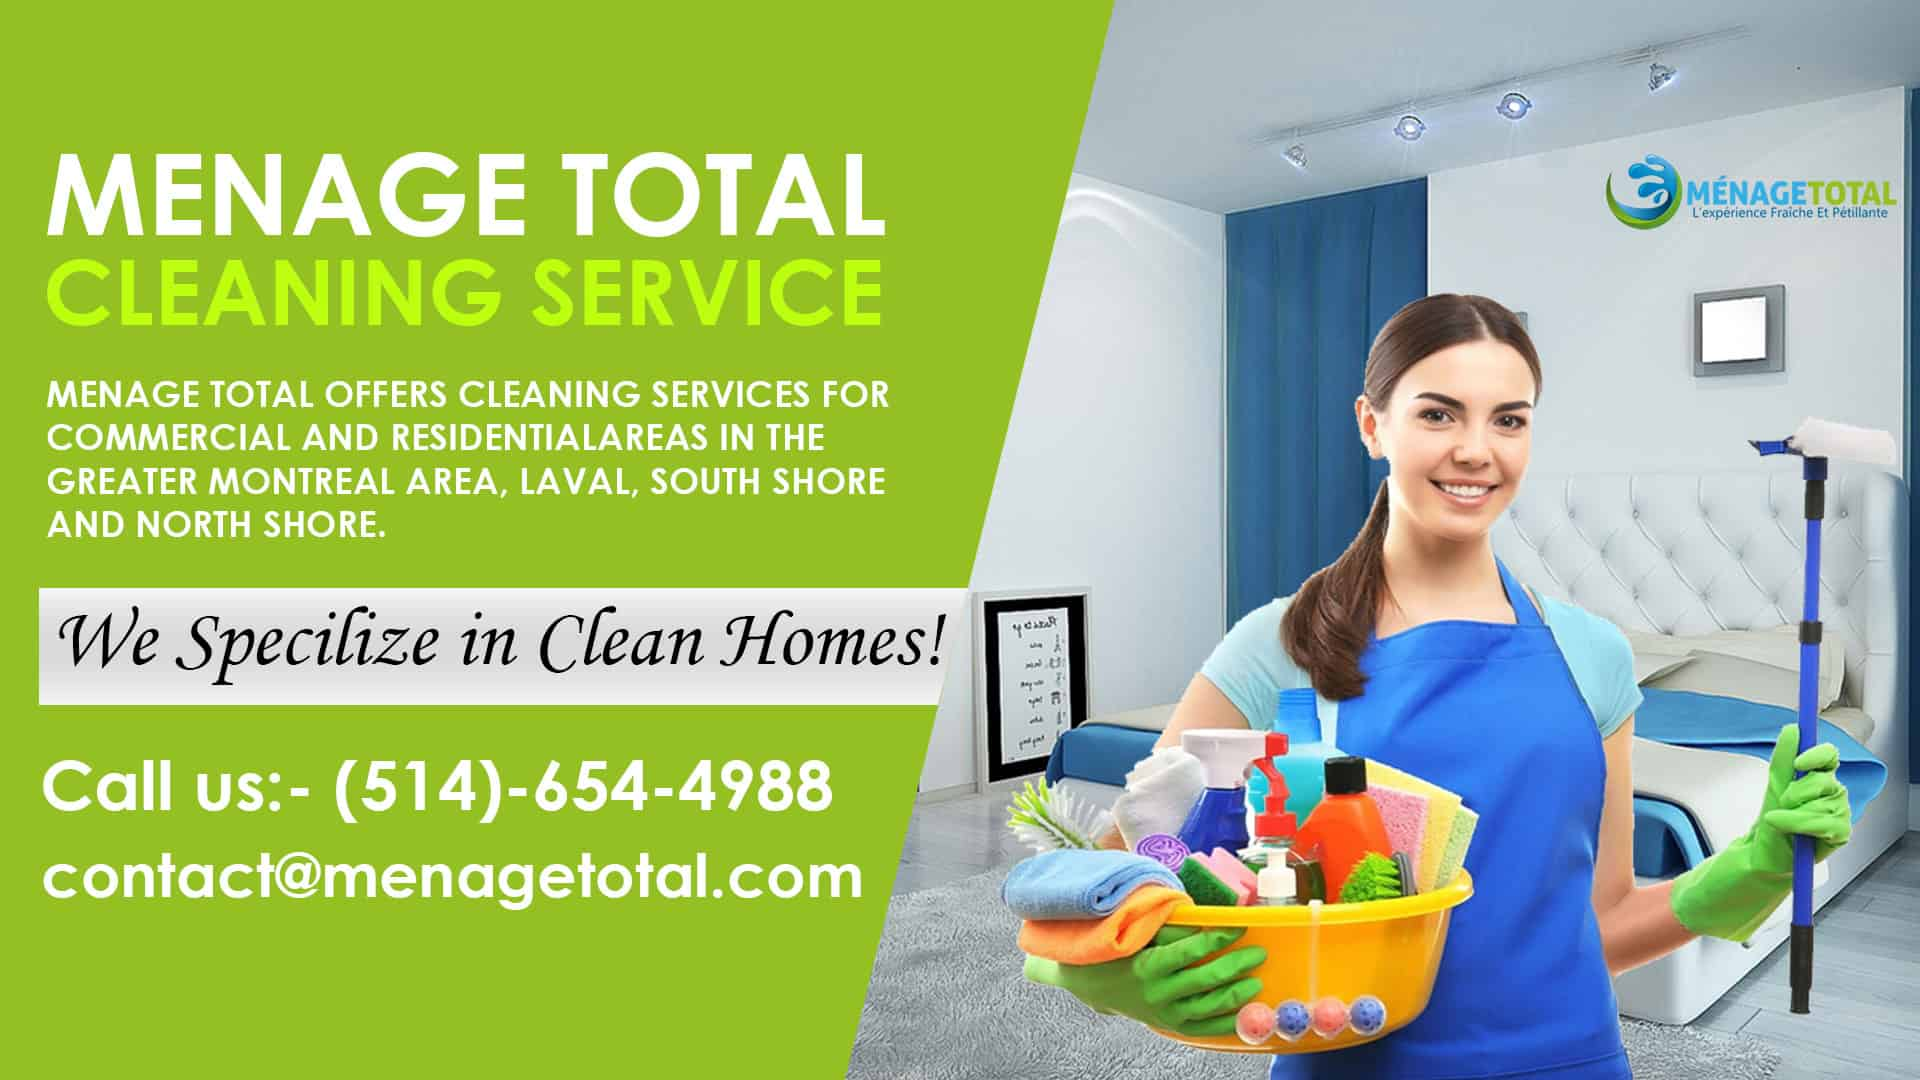 Menage Total South Shore and North Shore Cleaning Services